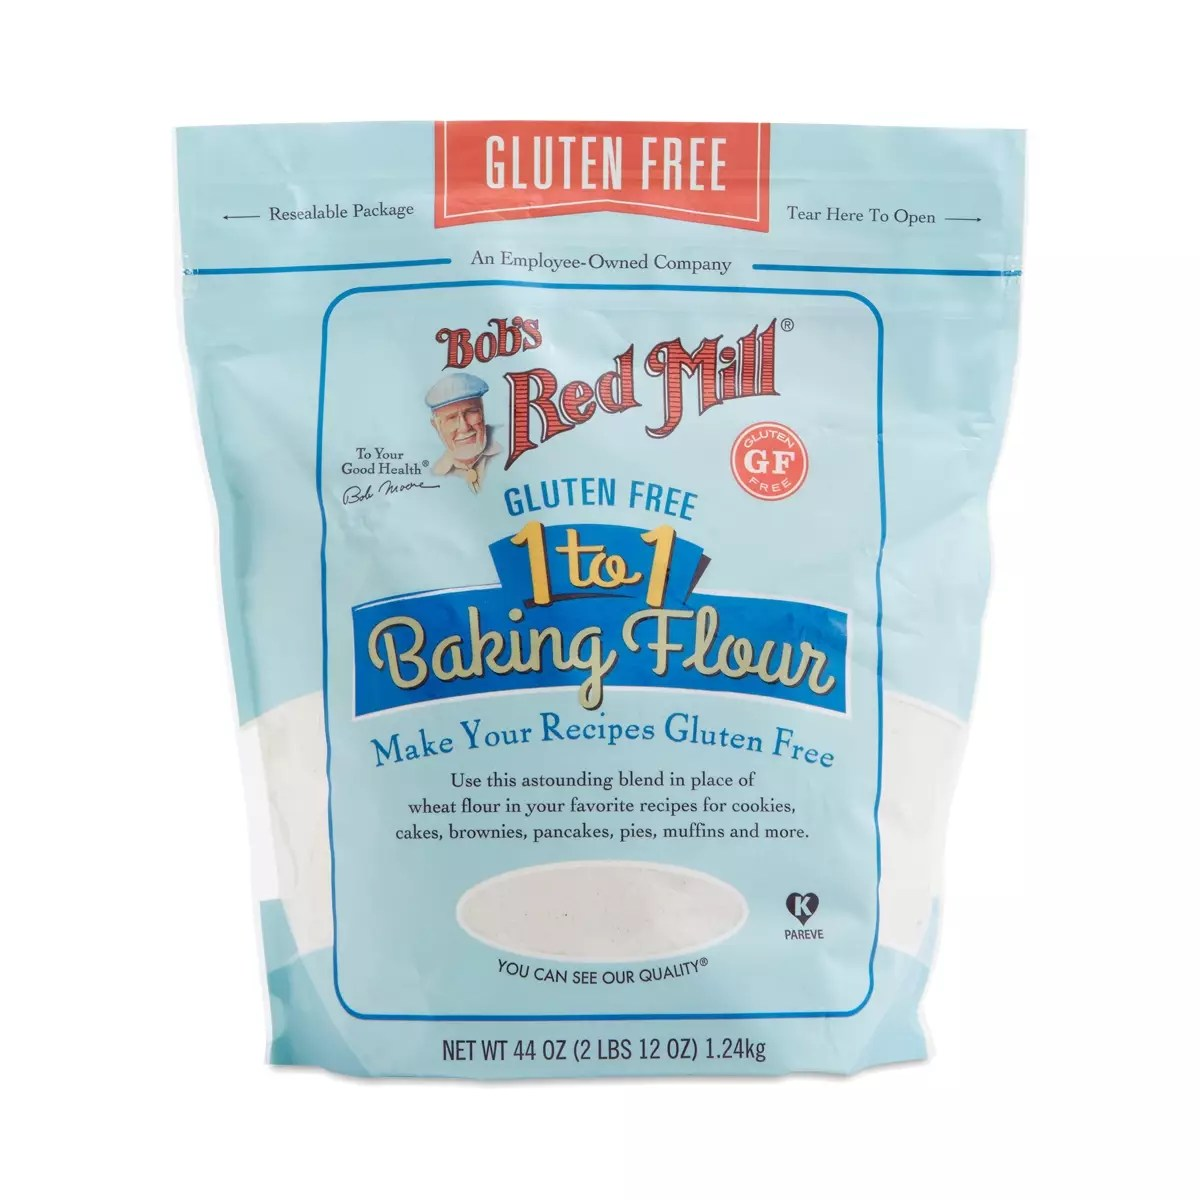 Gluten-Free 1-to-1 Baking Flour by Bob's Red Mill - Thrive ...